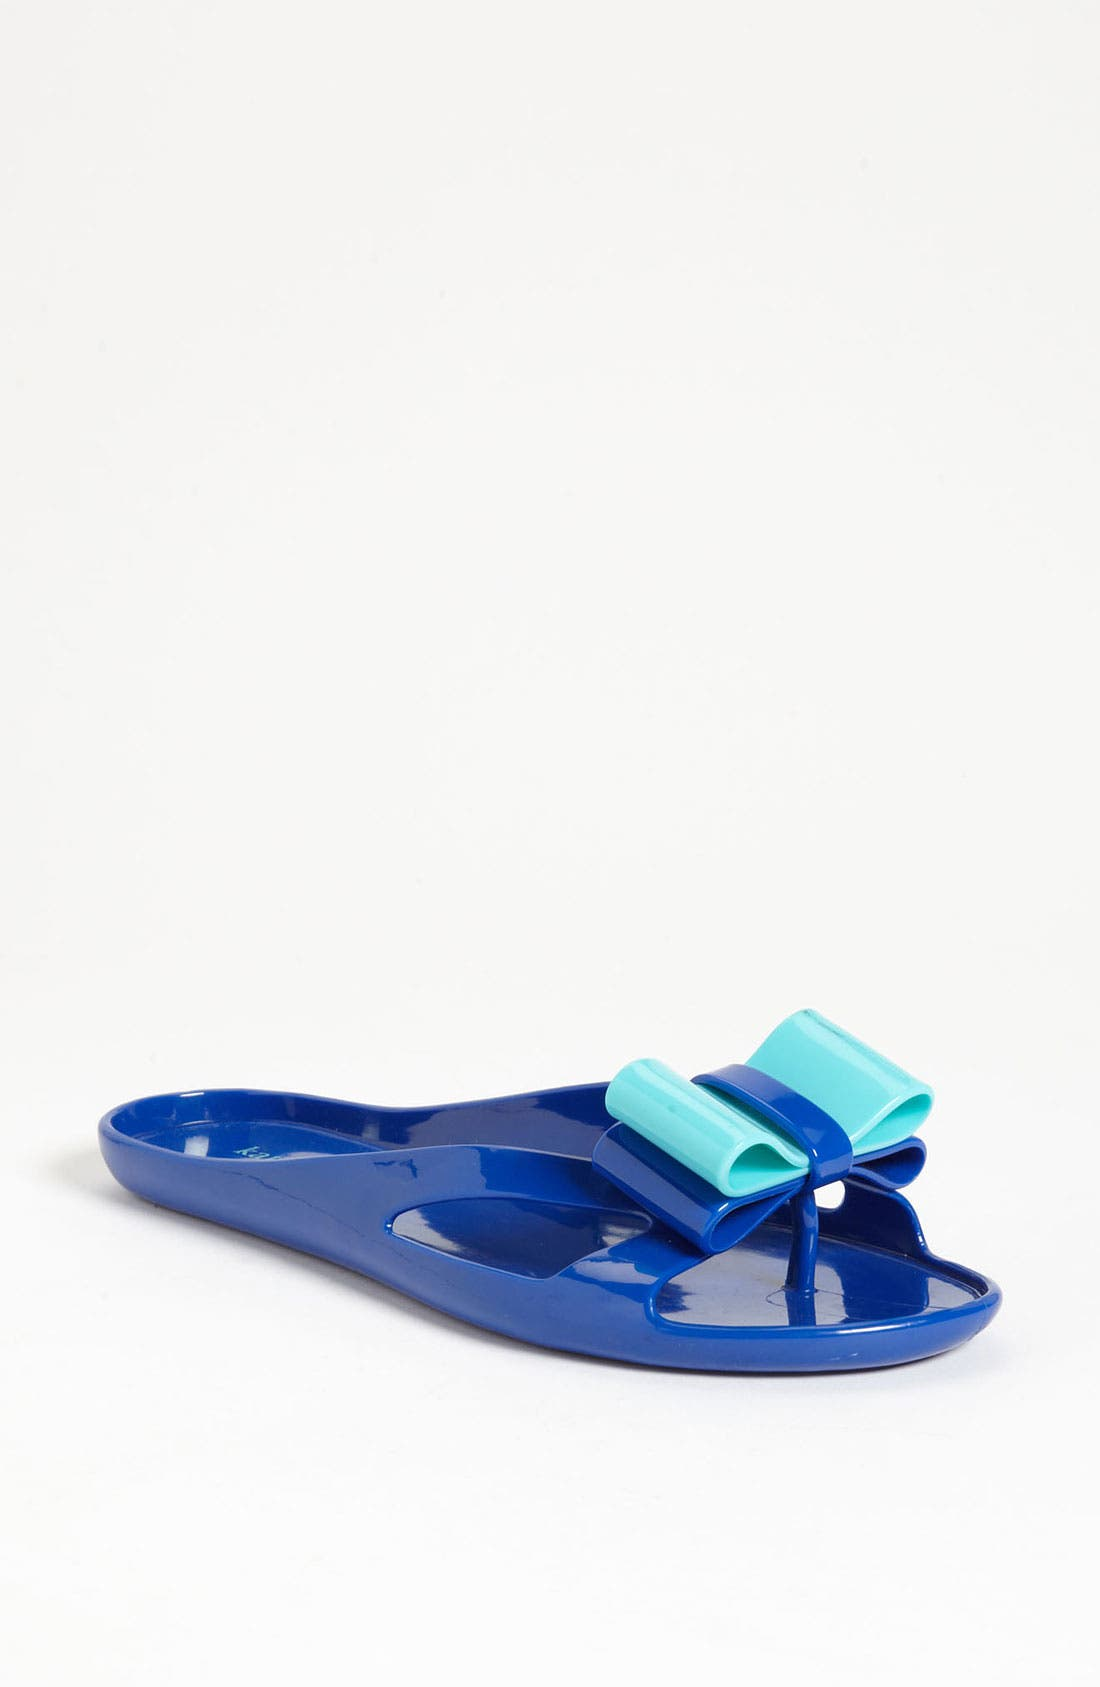 Main Image - kate spade new york 'bennie' sandal